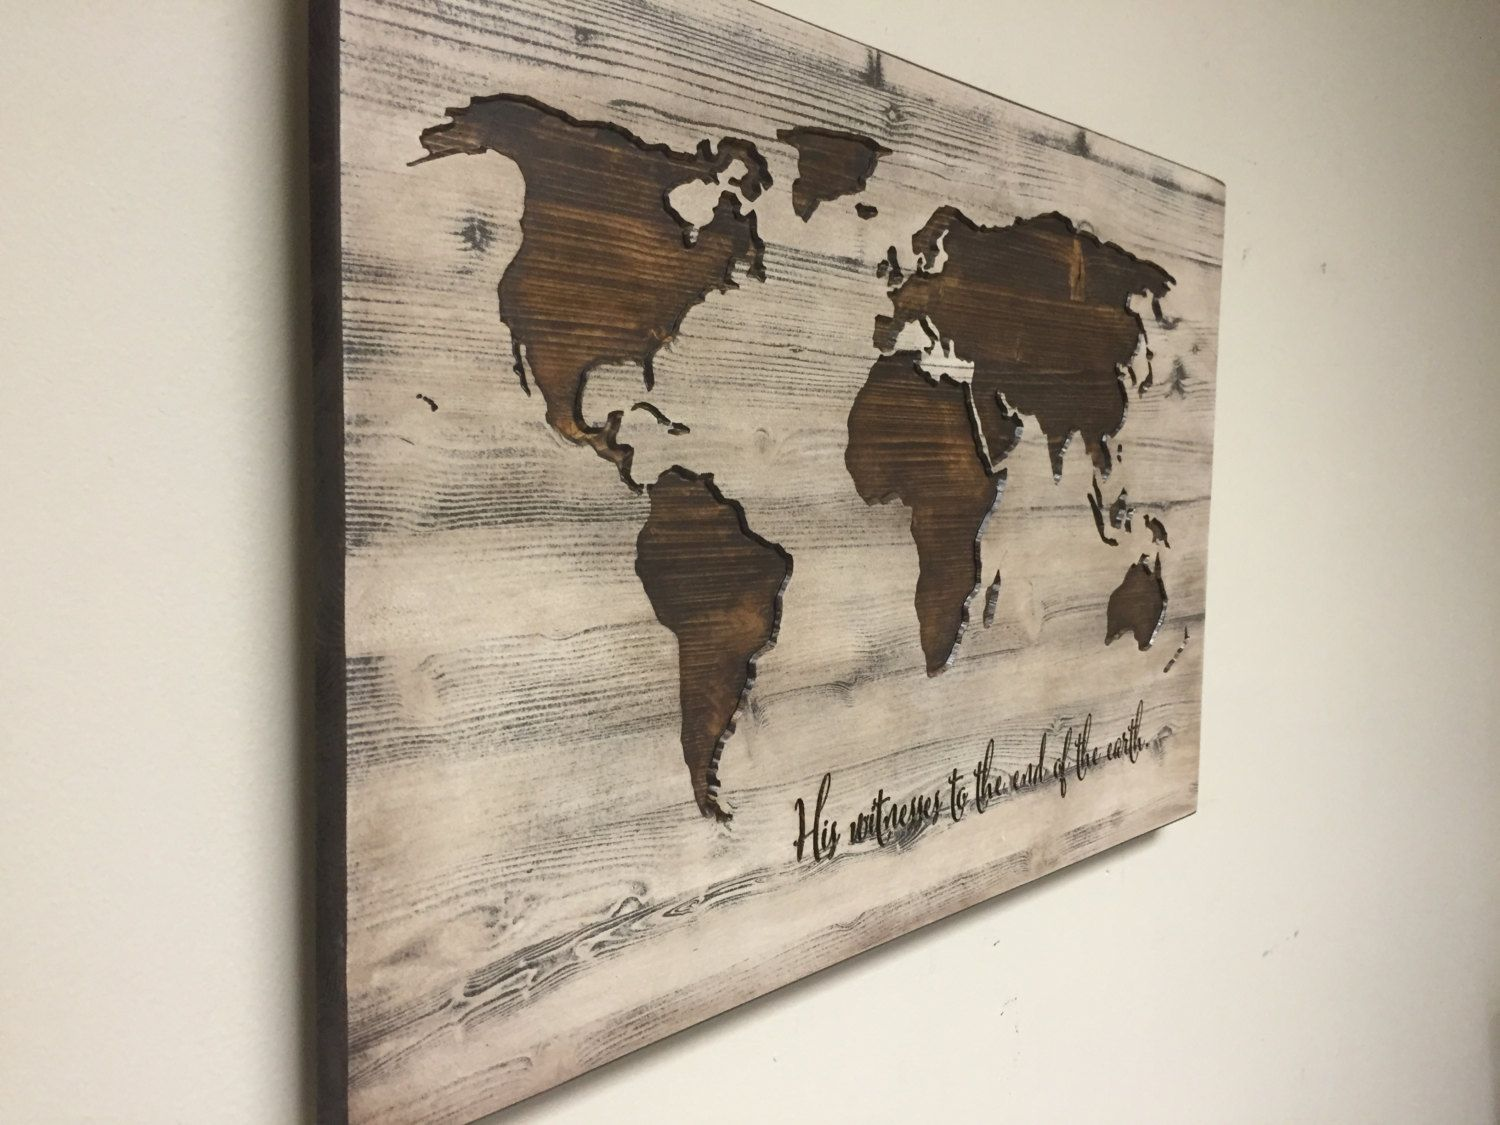 World map wall art, spiritual, Vintage Carved Wood Map, His Witness ...